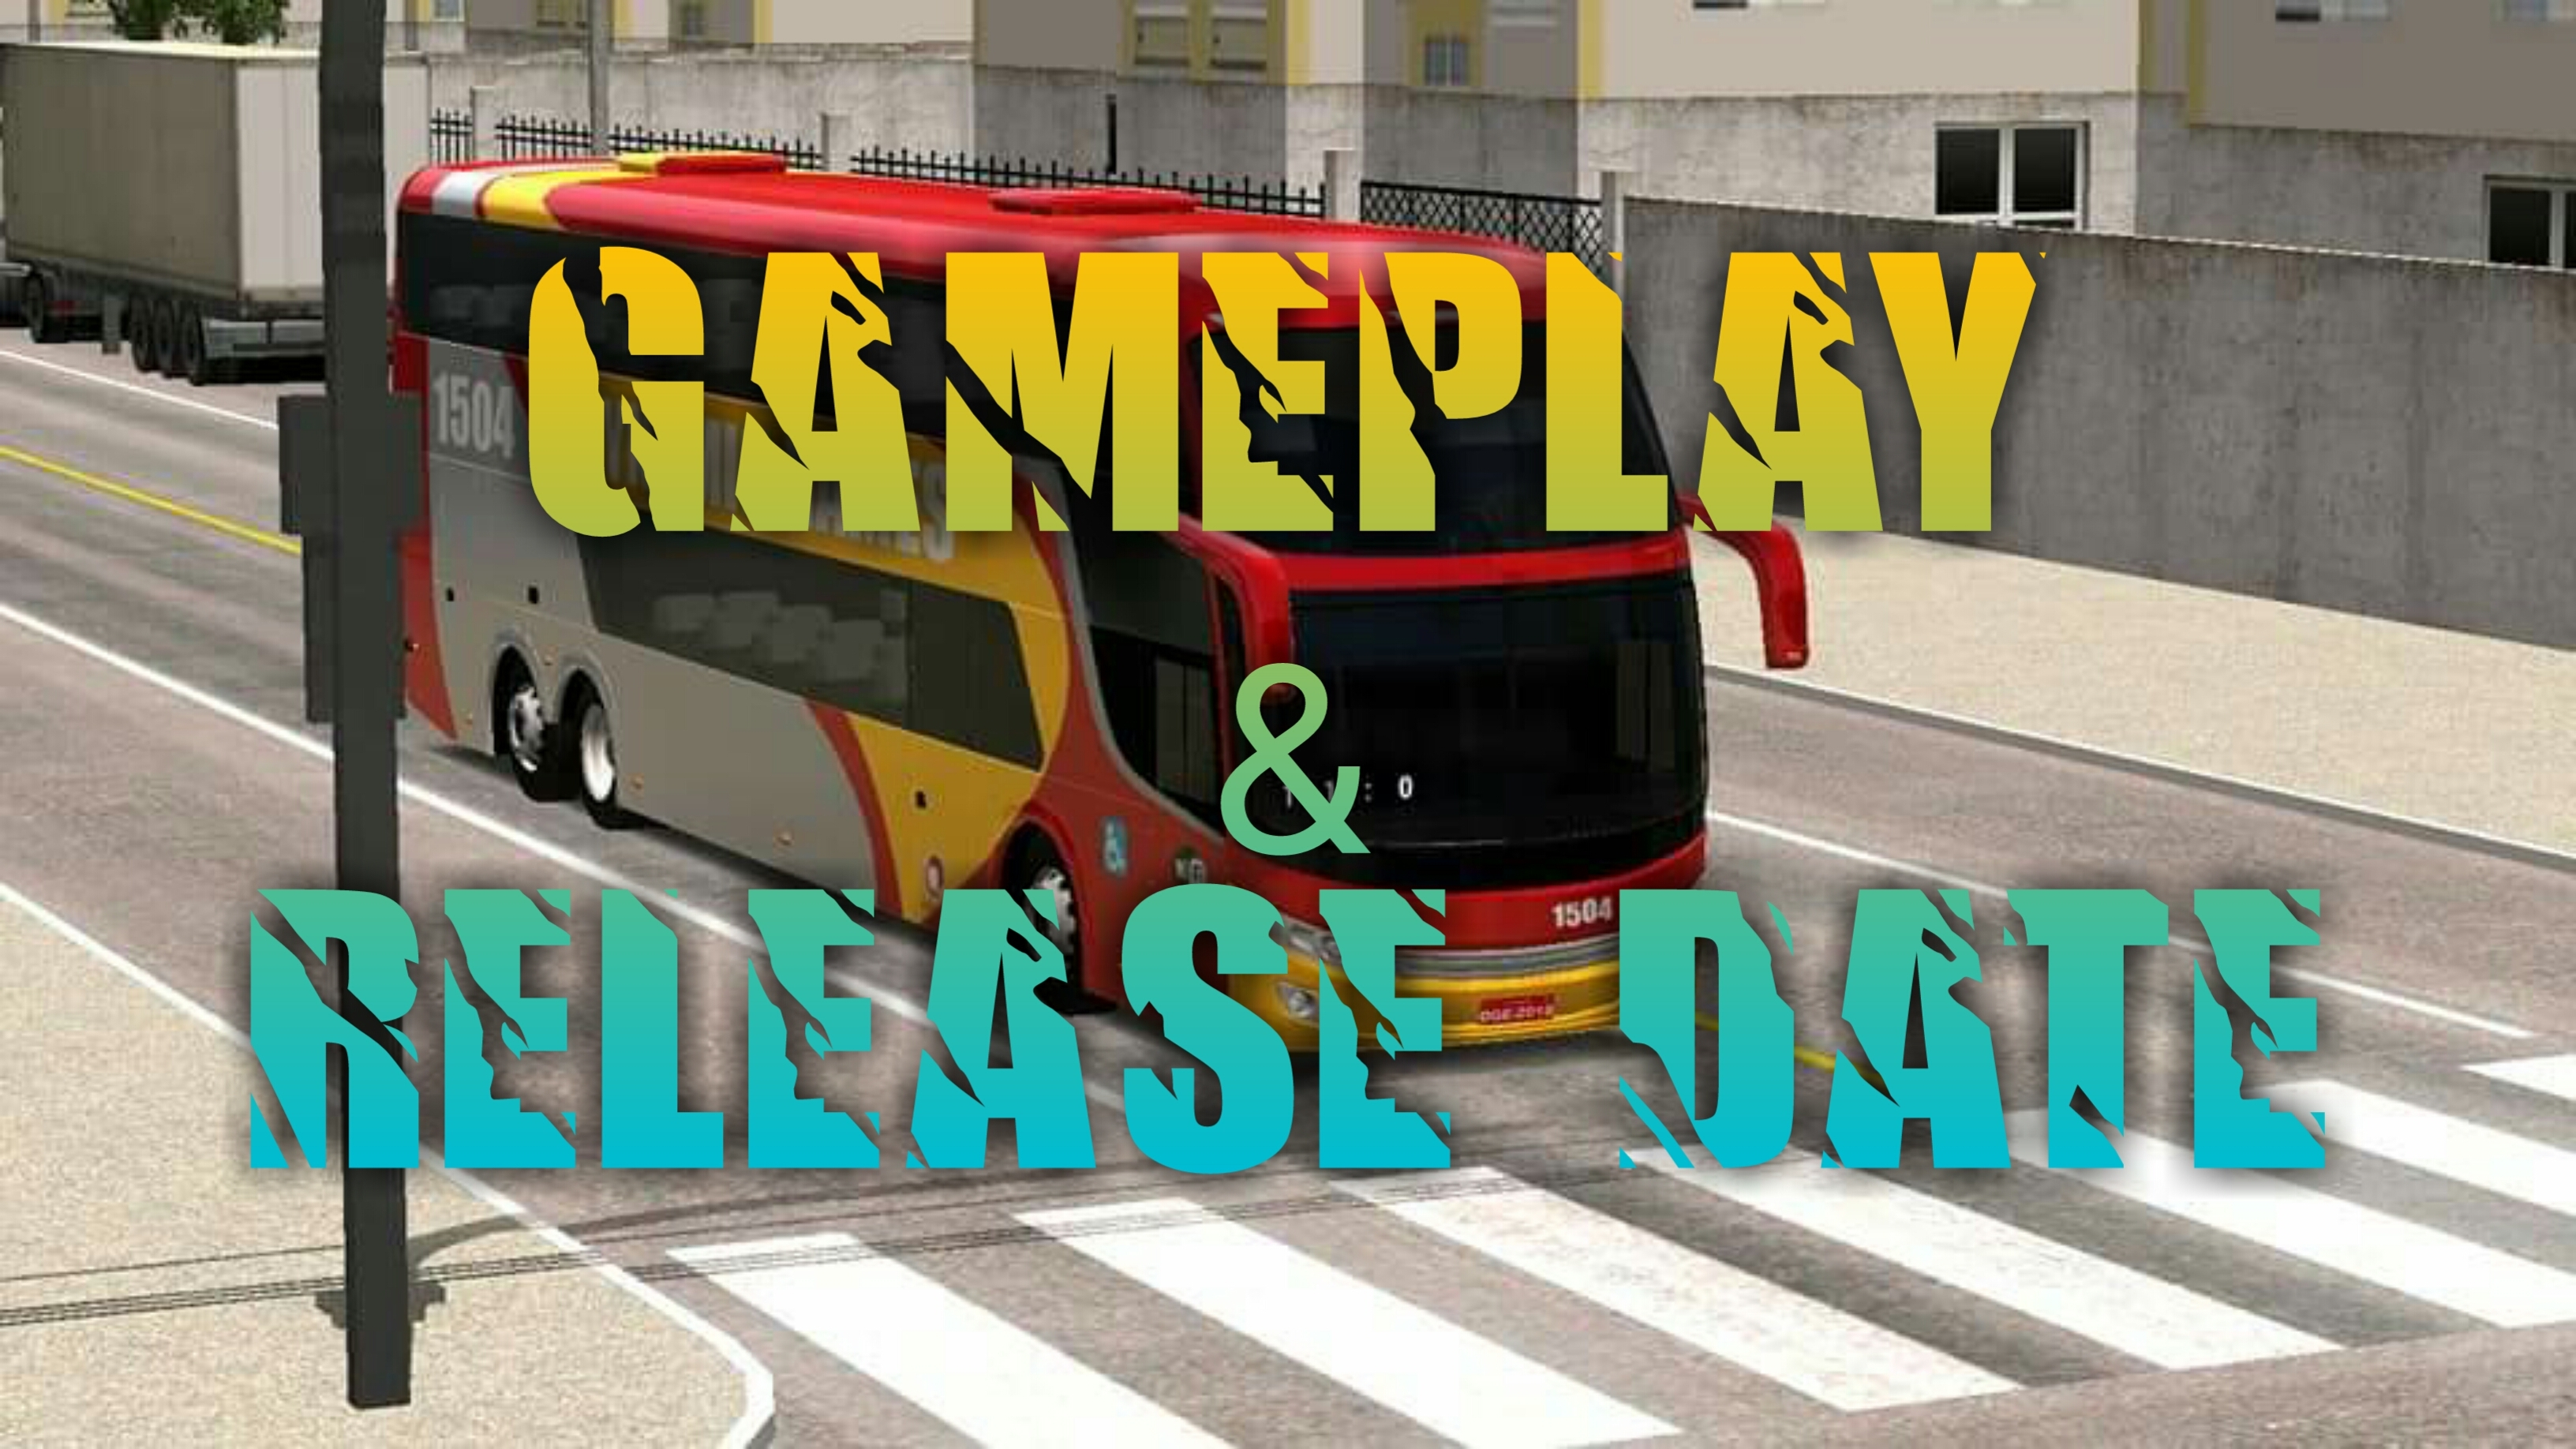 Download World Bus Driving Simulator Release Date & Gameplay, World Bus Driving Simulator, World Bus Driving Simulator, World Bus Driving Simulator Gameplay, World Bus Driving Simulator Release Date, World Bus Driving Simulator Update